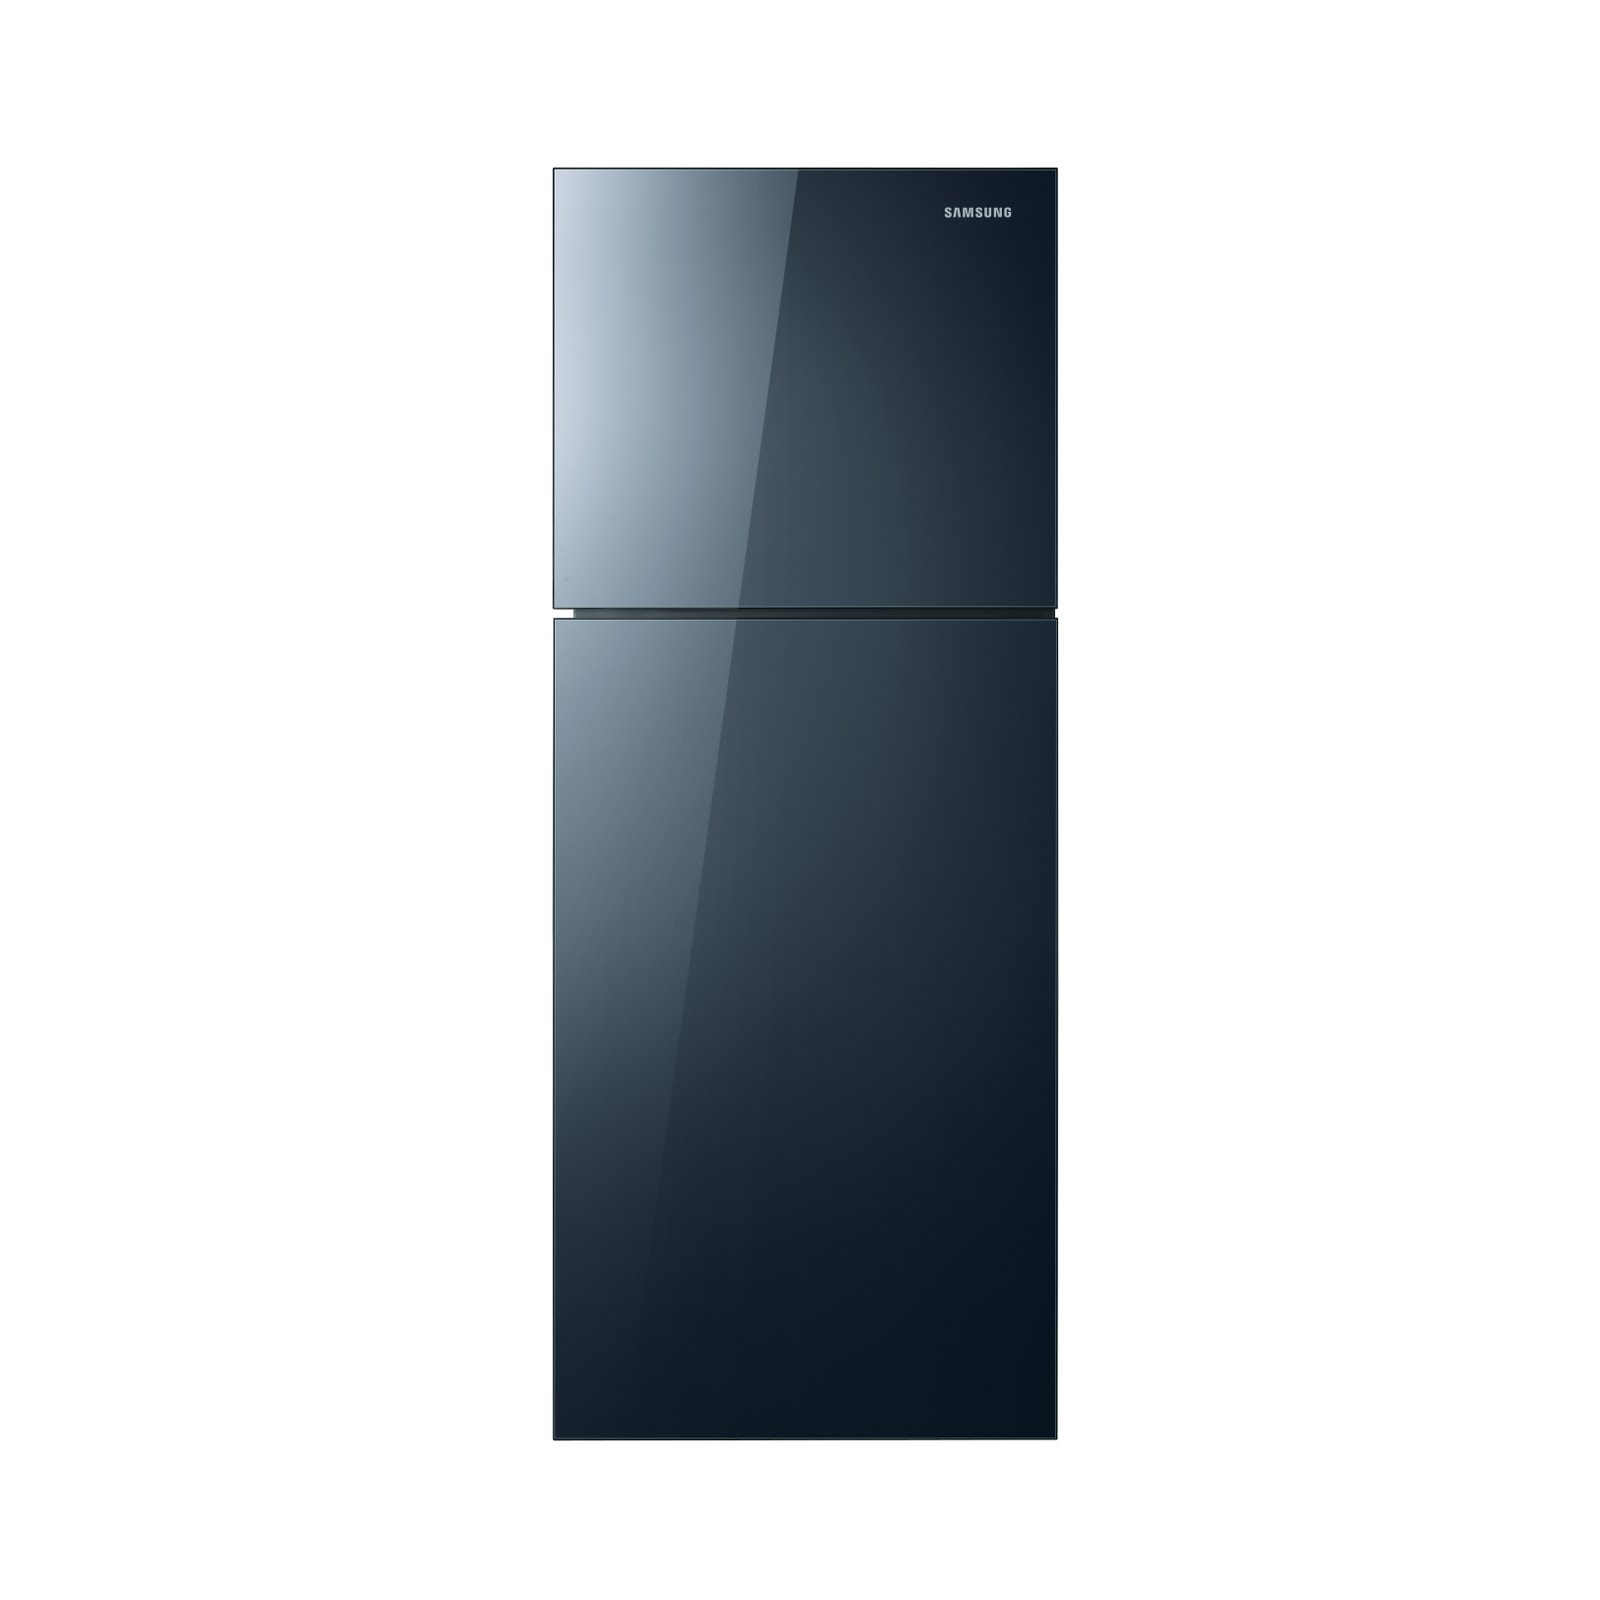 get samsung refrigerators tgv 10 rt45tsgl the web magazine. Black Bedroom Furniture Sets. Home Design Ideas